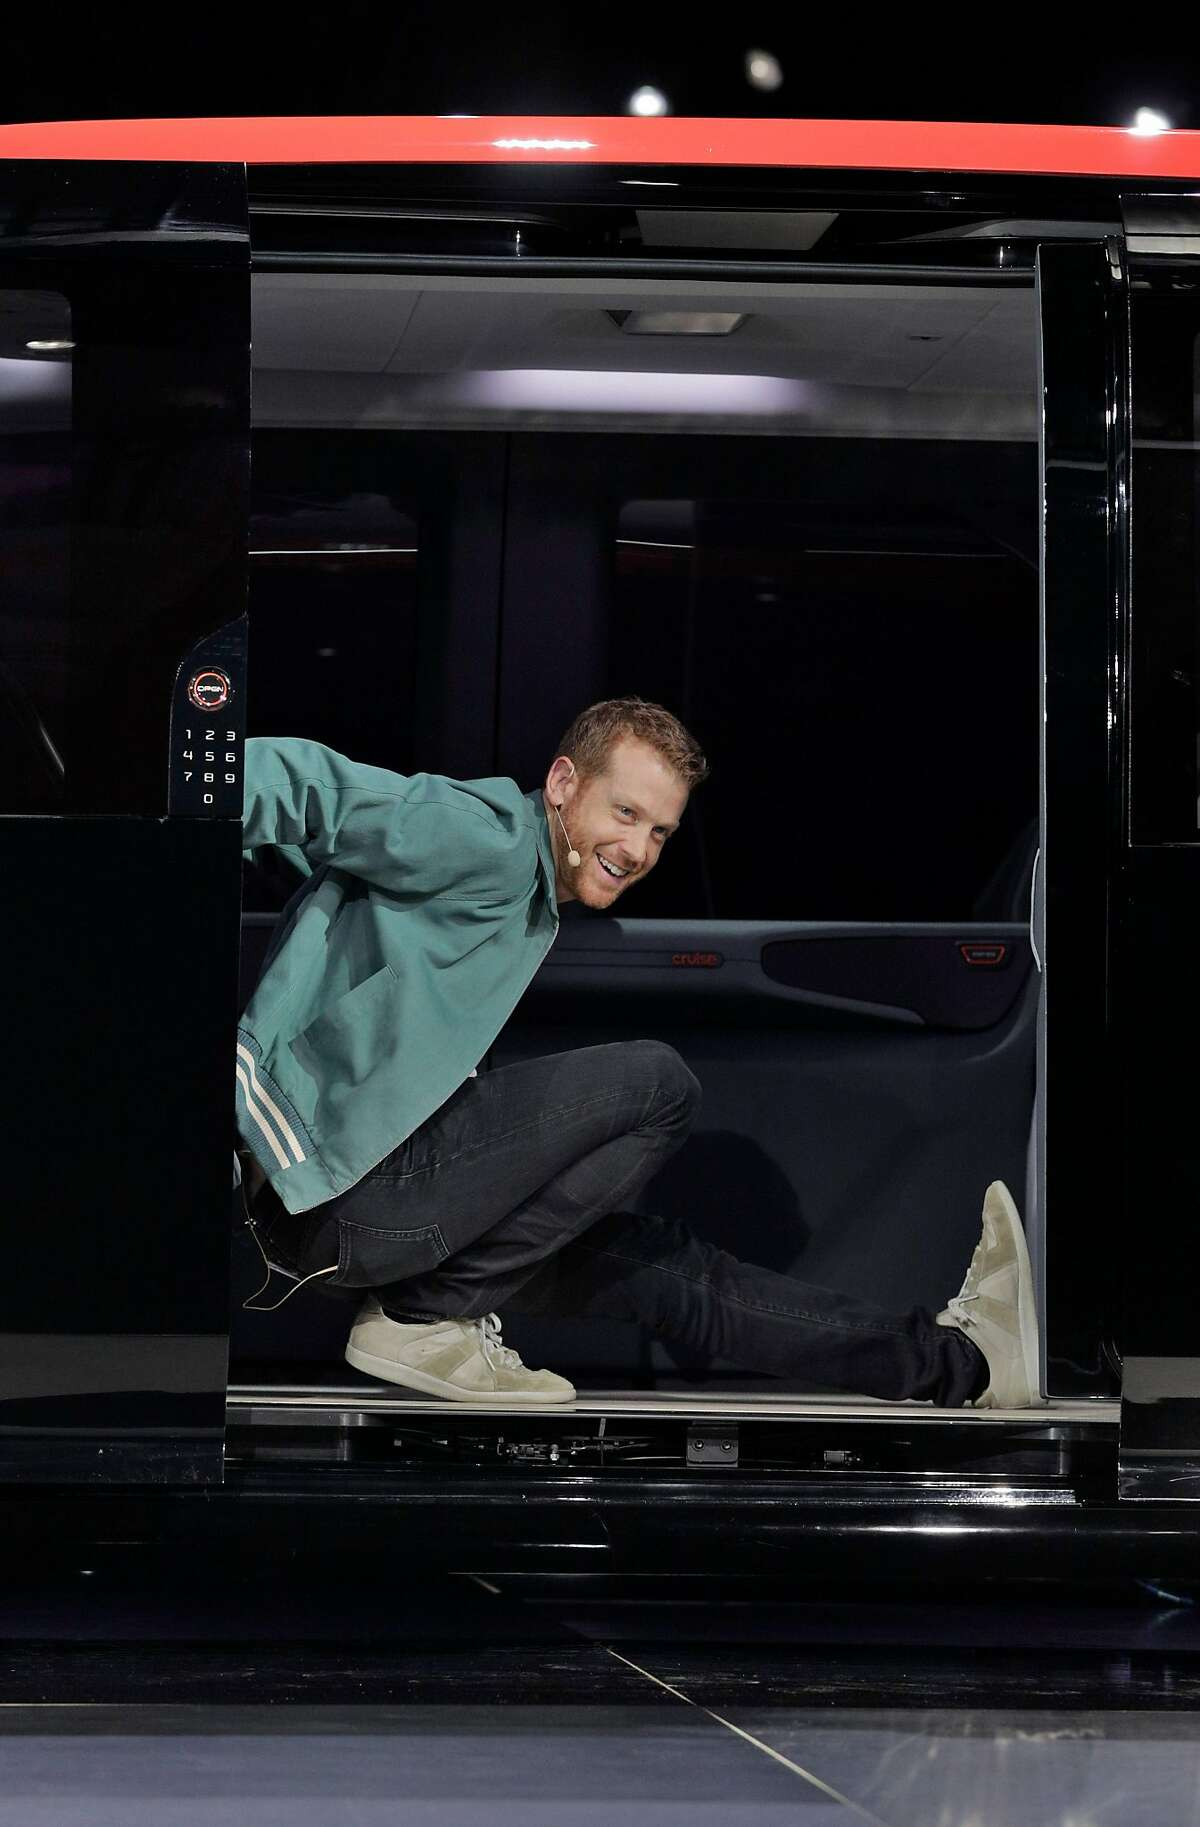 Kyle Vogt shows off the leg room in the new Cruise Origin, which has removed all driver machinery at the unveiling of the Cruise Origin, a fully autonomous passenger vehicle in San Francisco, Calif., on Tuesday, January 21, 2020.